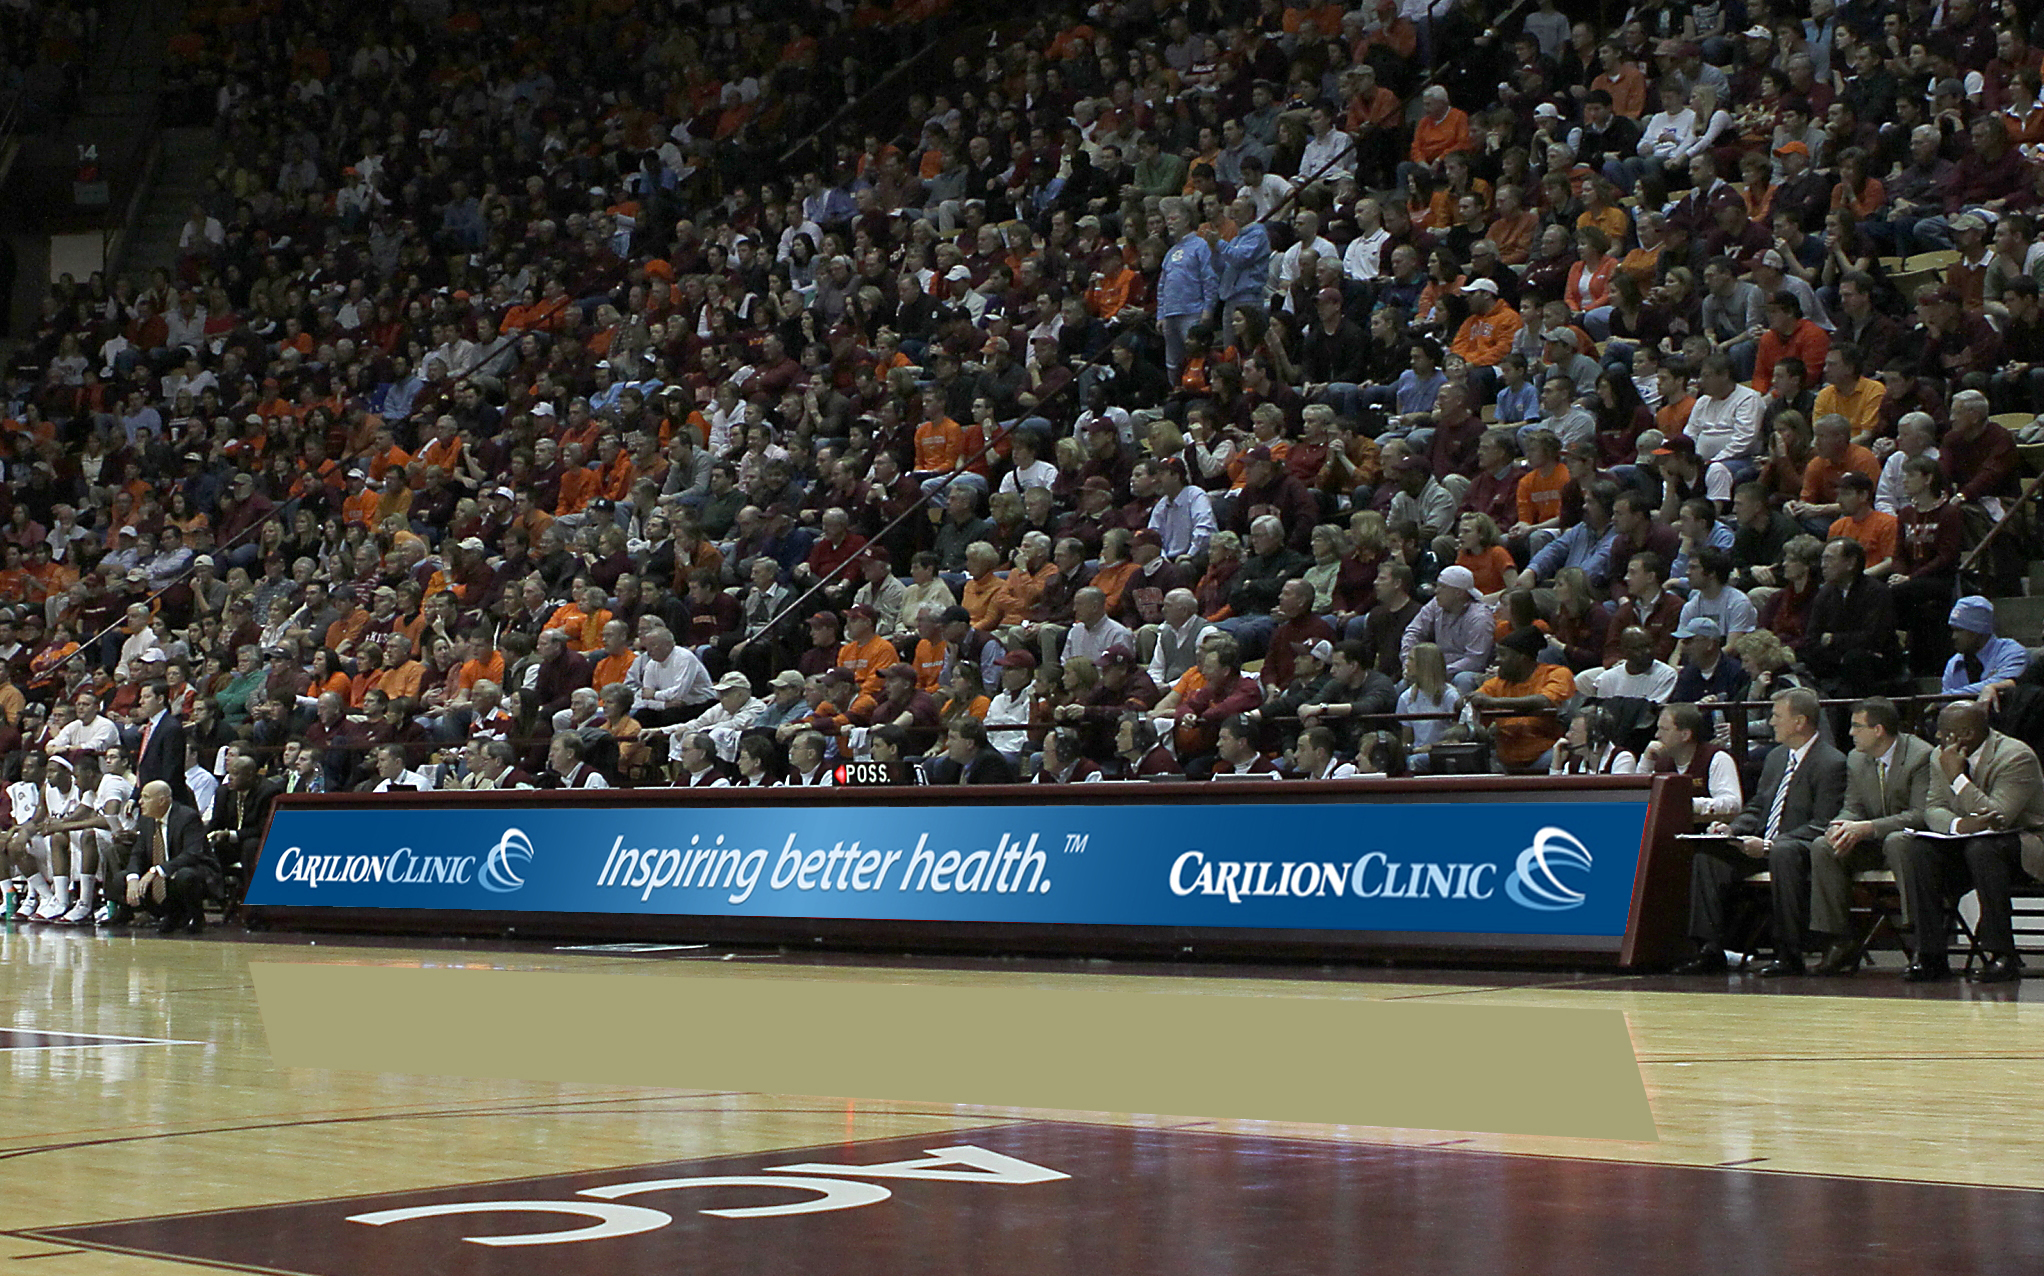 Carilion Clinic - BB Courtside.jpg